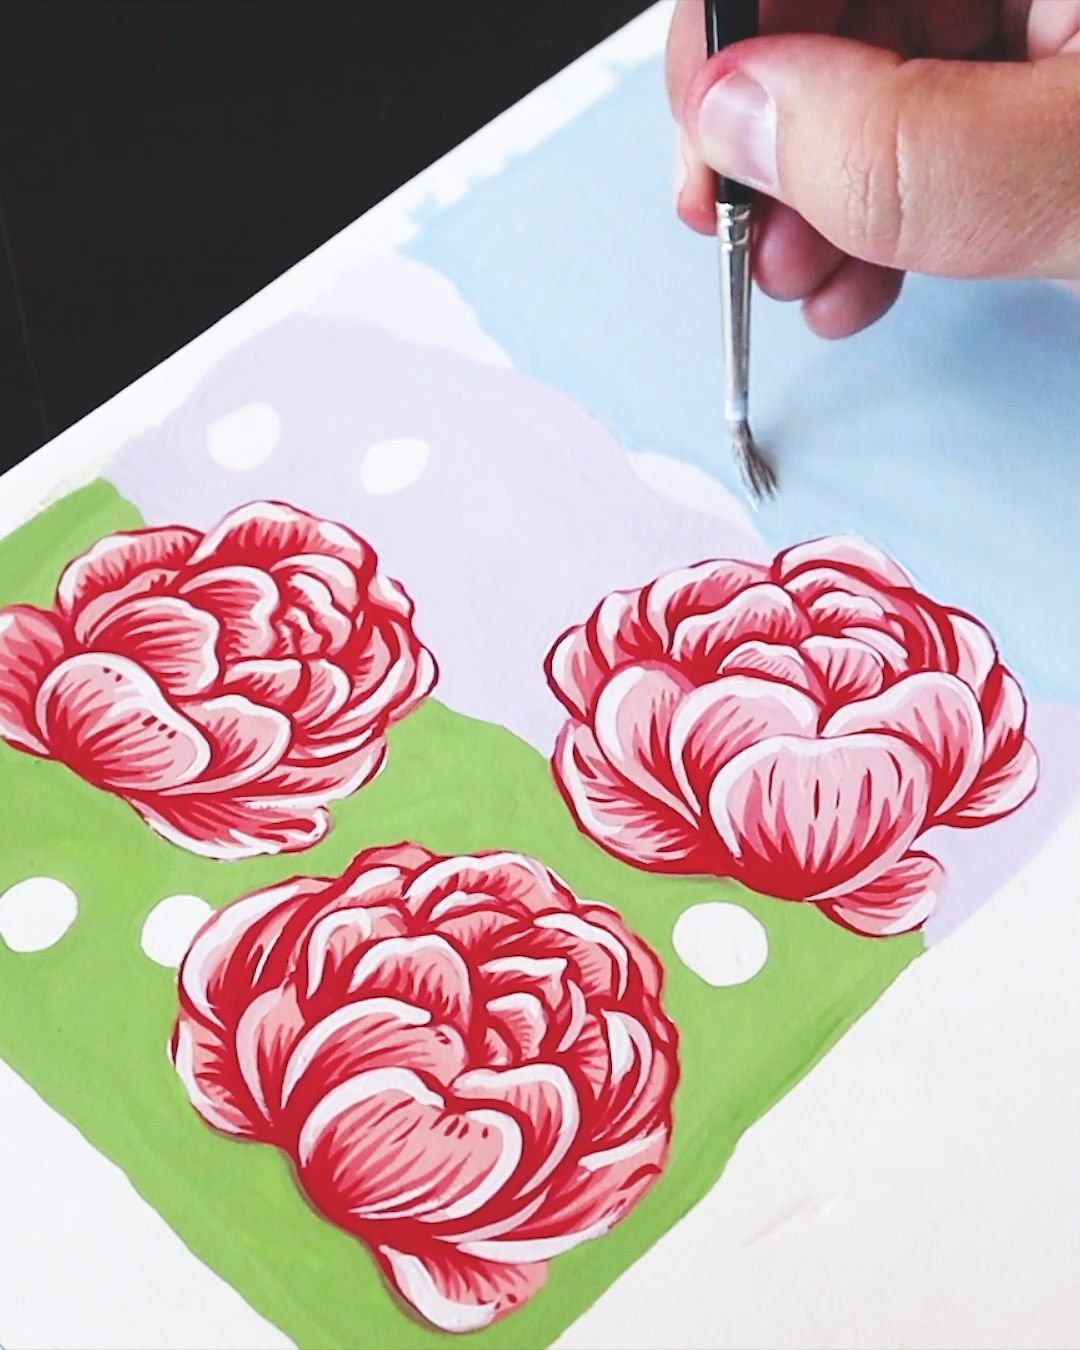 Painting Peonies by Philip Boelter